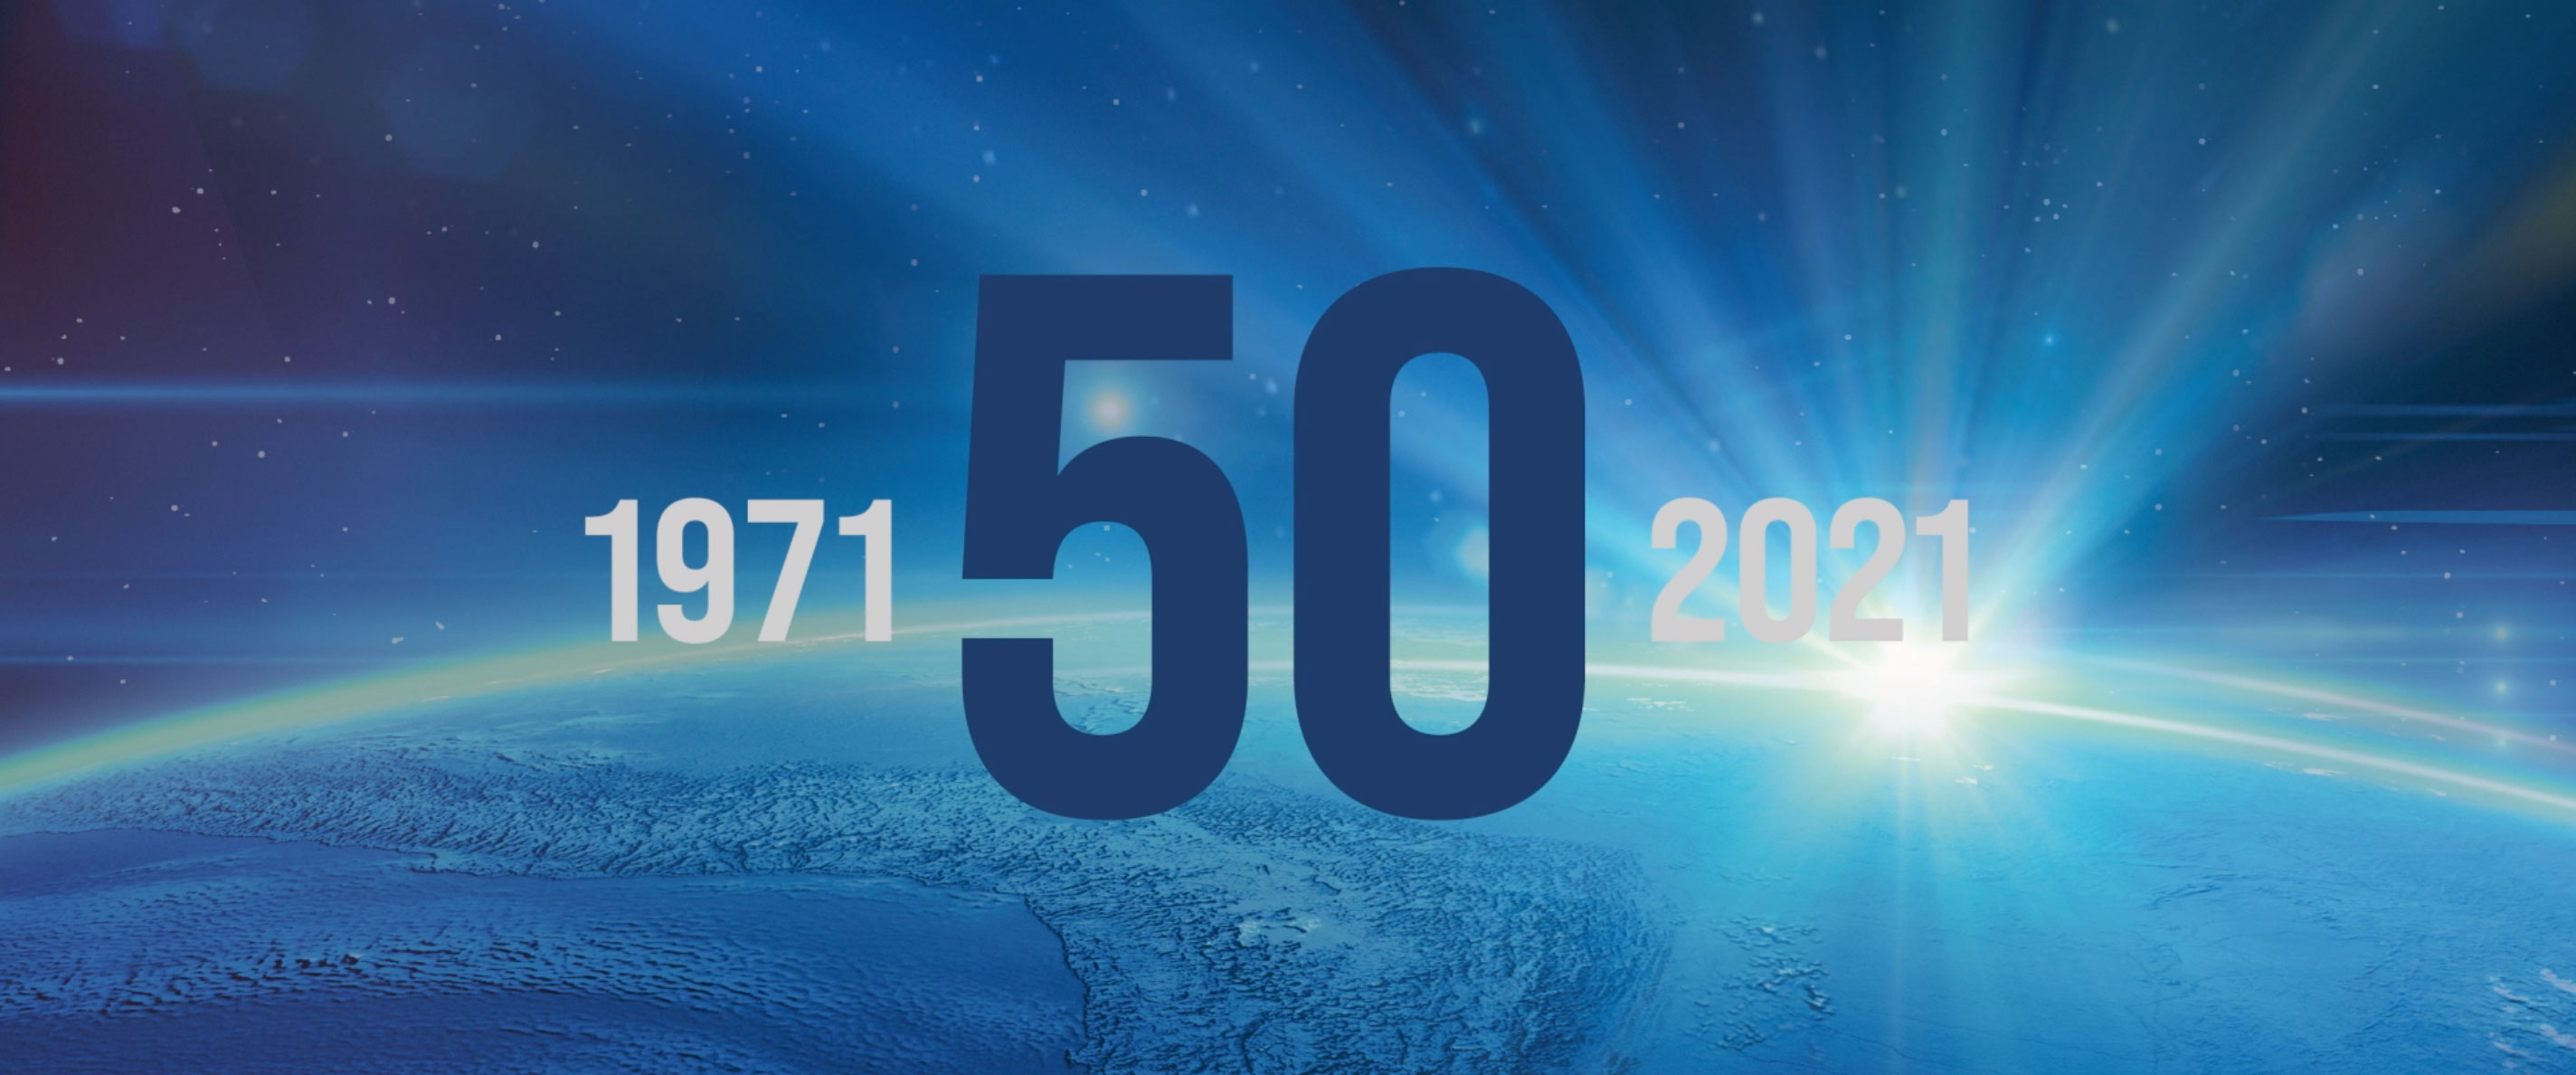 Video Animation of Globe and the 50th Anniversary section title. Shows flying images of the Team's projects and innovations through the years